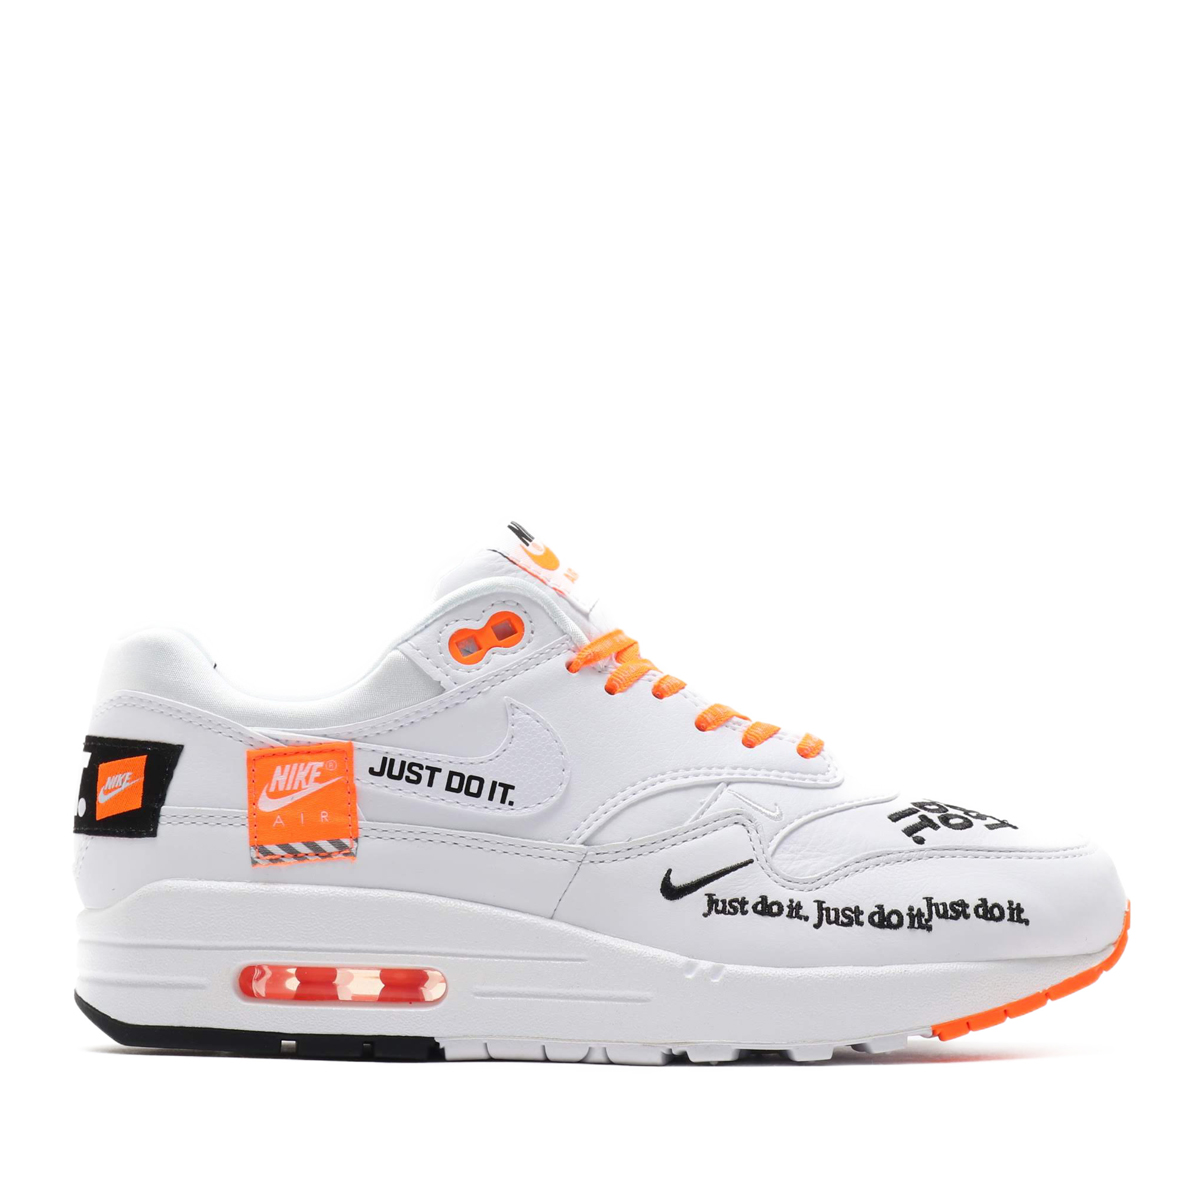 bb28f281a6a NIKE WMNS AIR MAX 1 LX (Nike women Air Max 1 LX) WHITE BLACK-TOTAL ORANGE  18FA-S